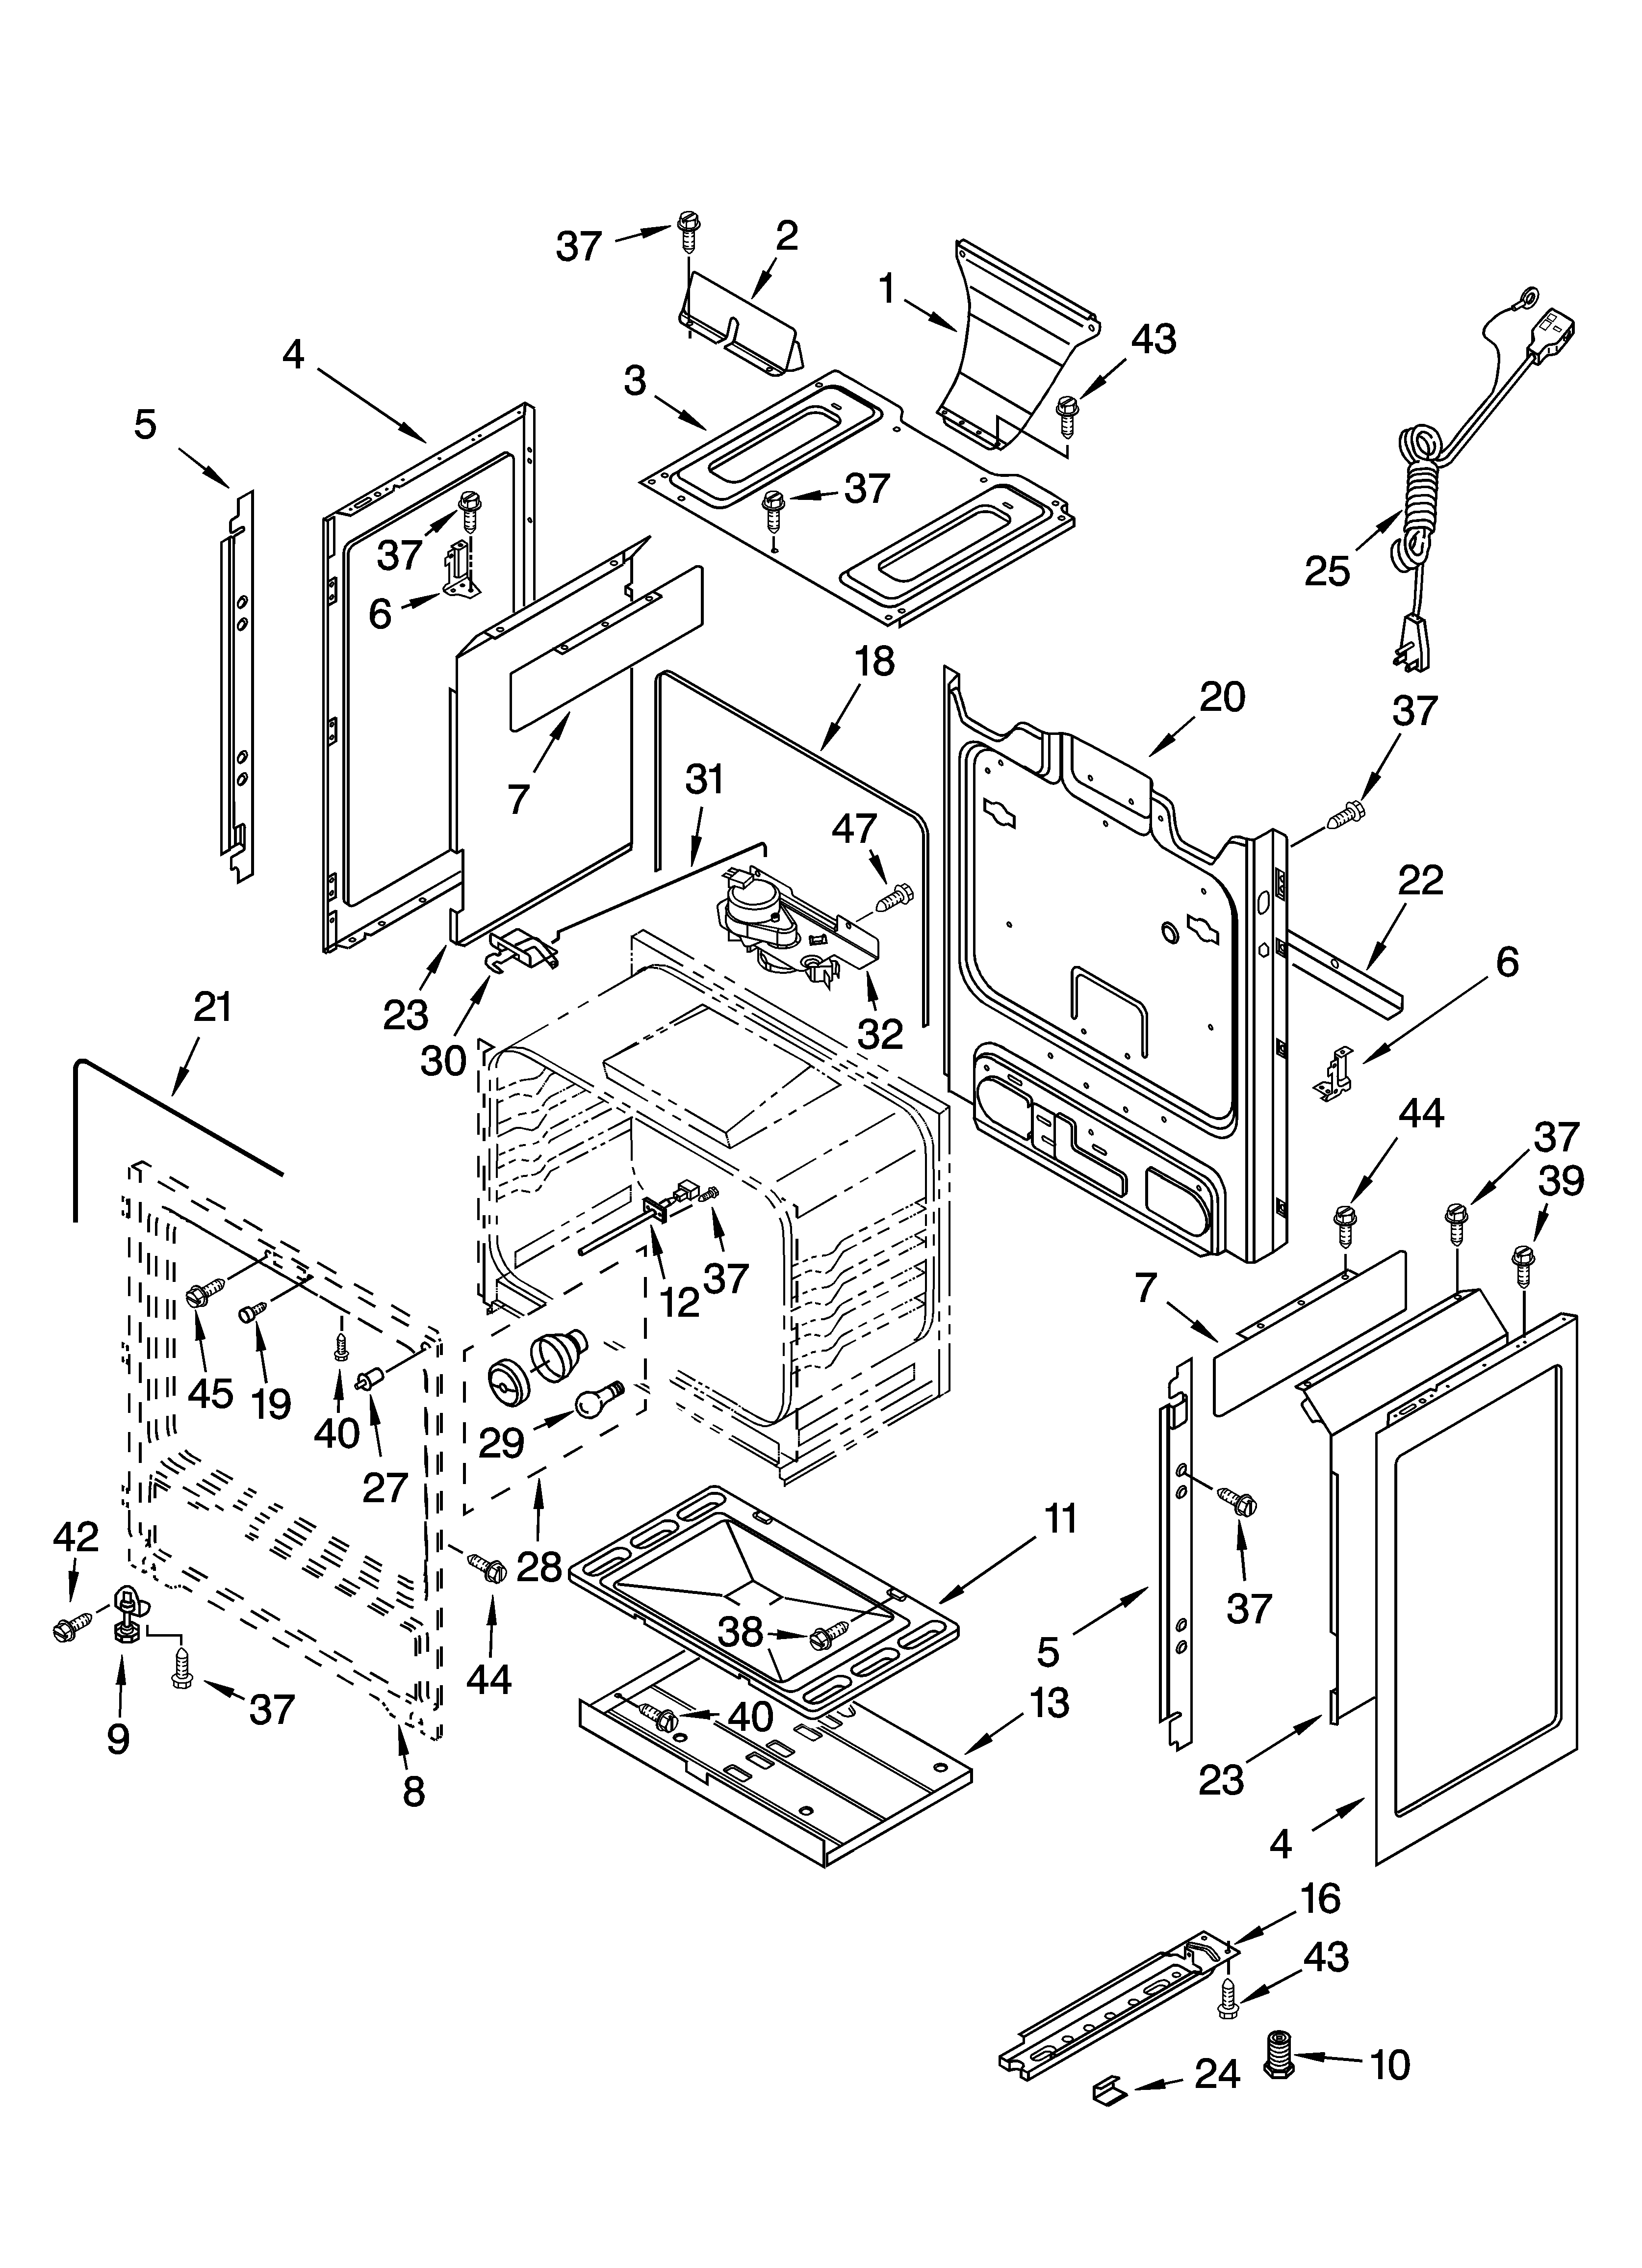 Whirlpool GS470LEMQ1 chassis parts diagram